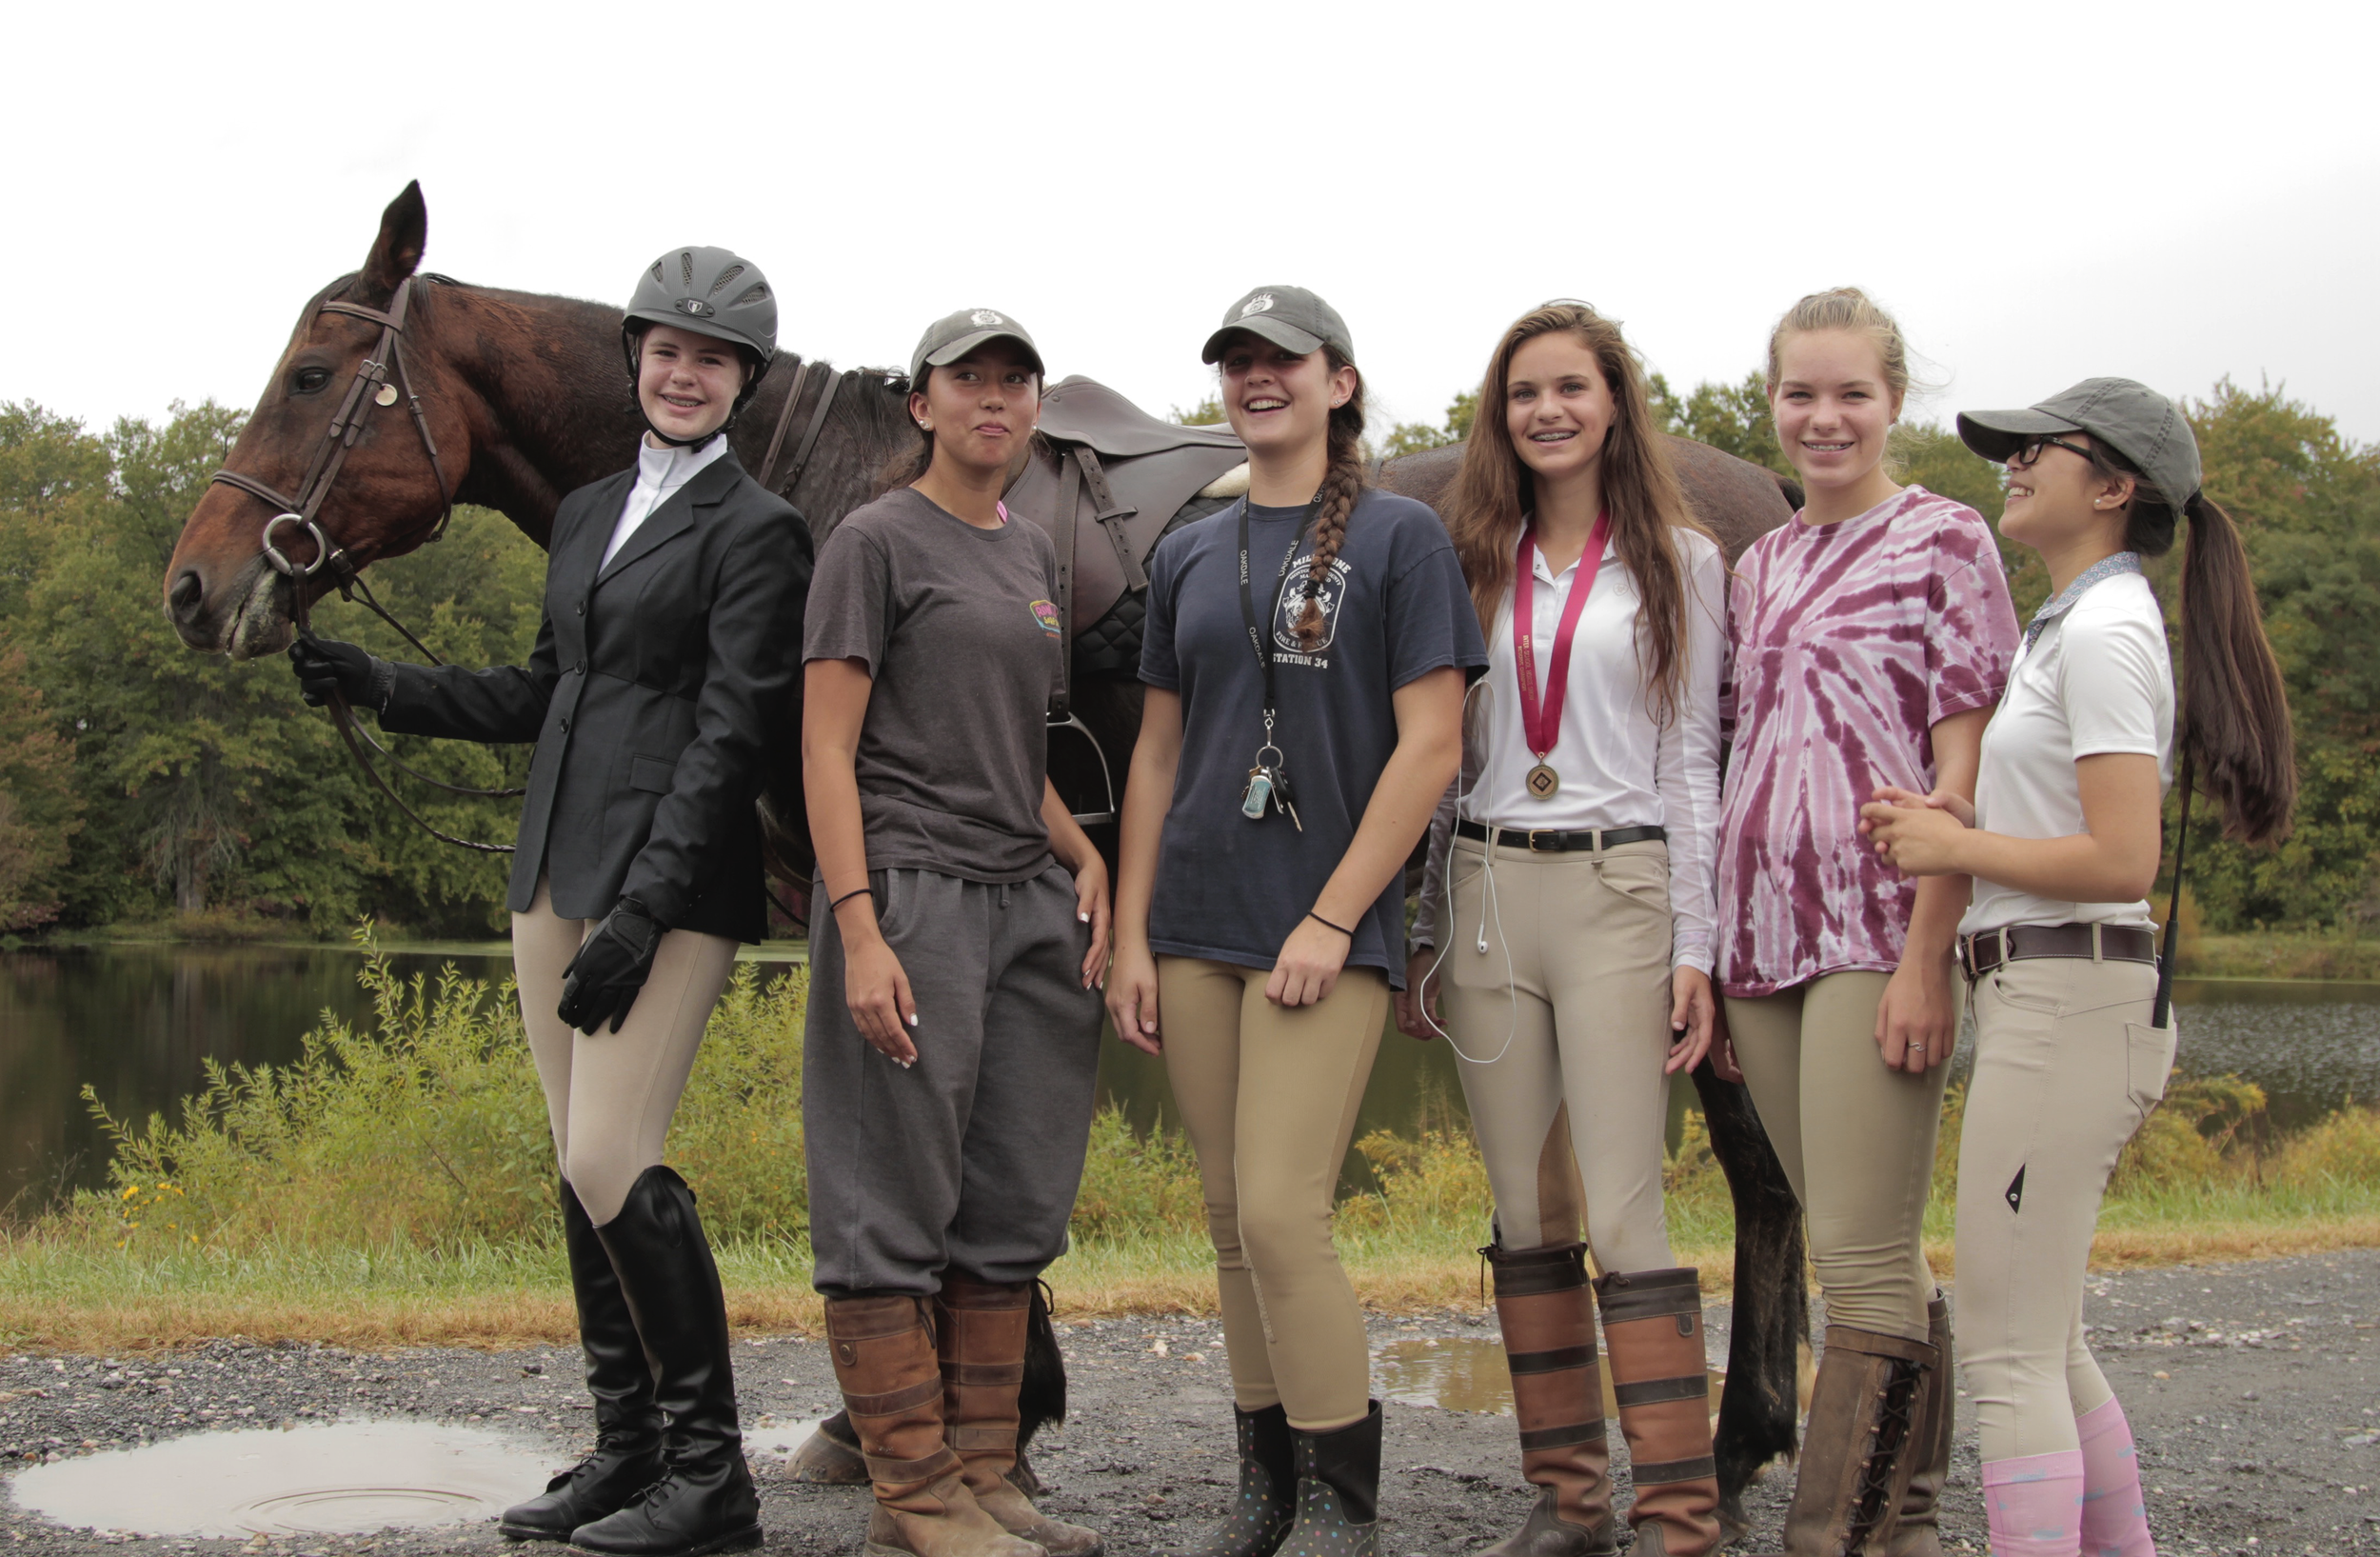 You can compete on a school team or as an independant rider